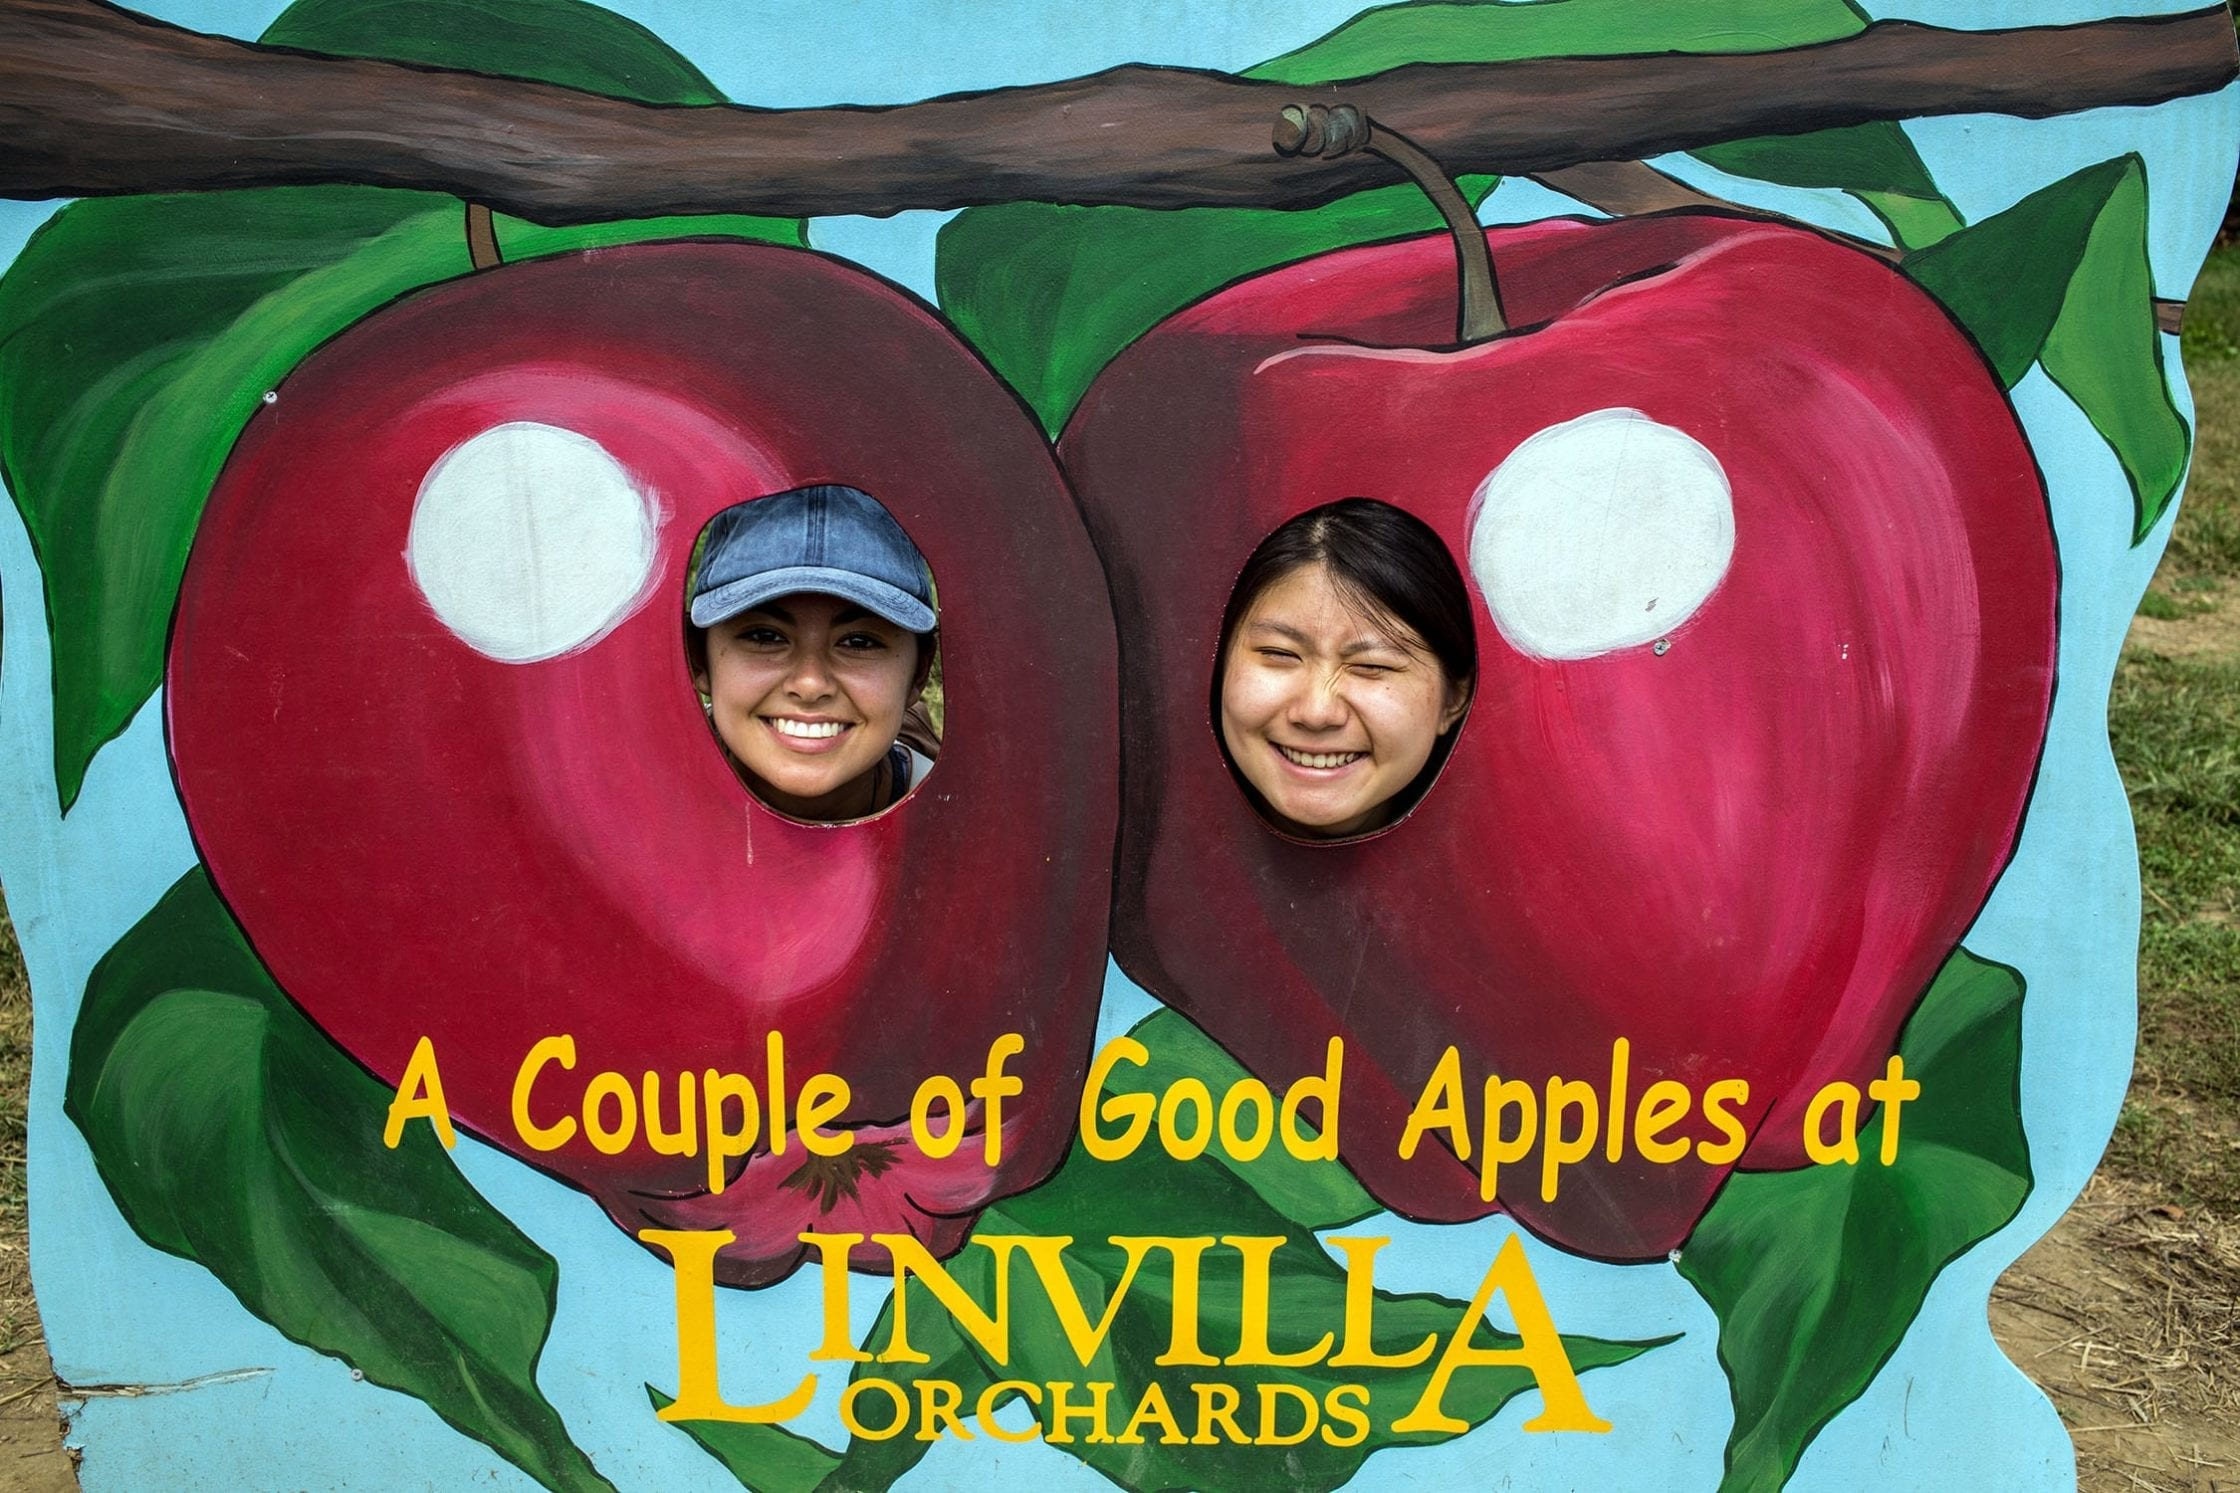 Posing as apples at the orchard